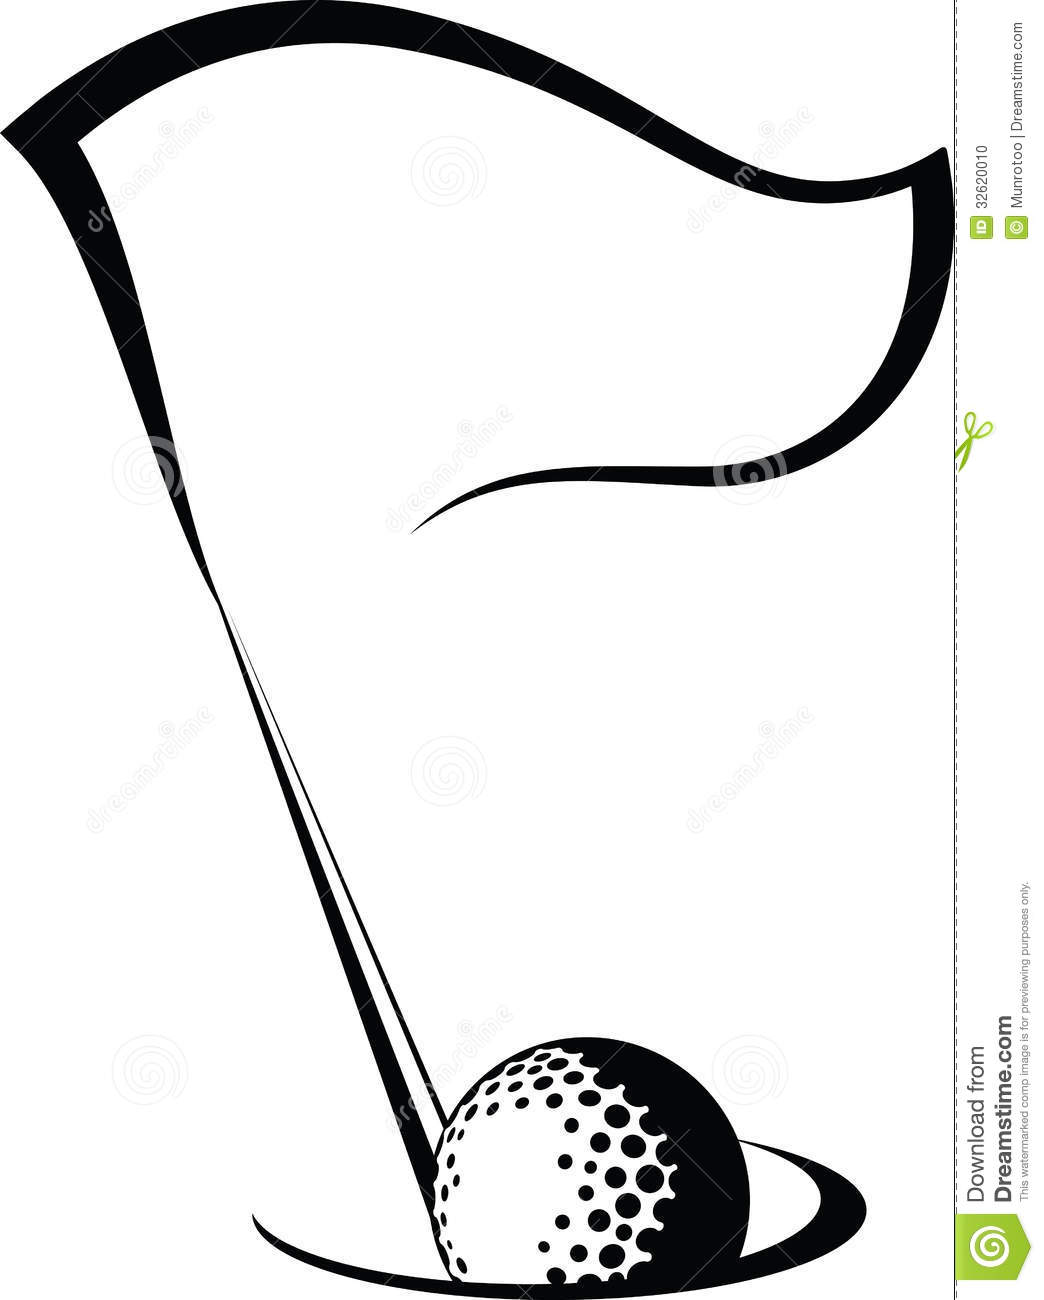 Golf Clipart Black And White.